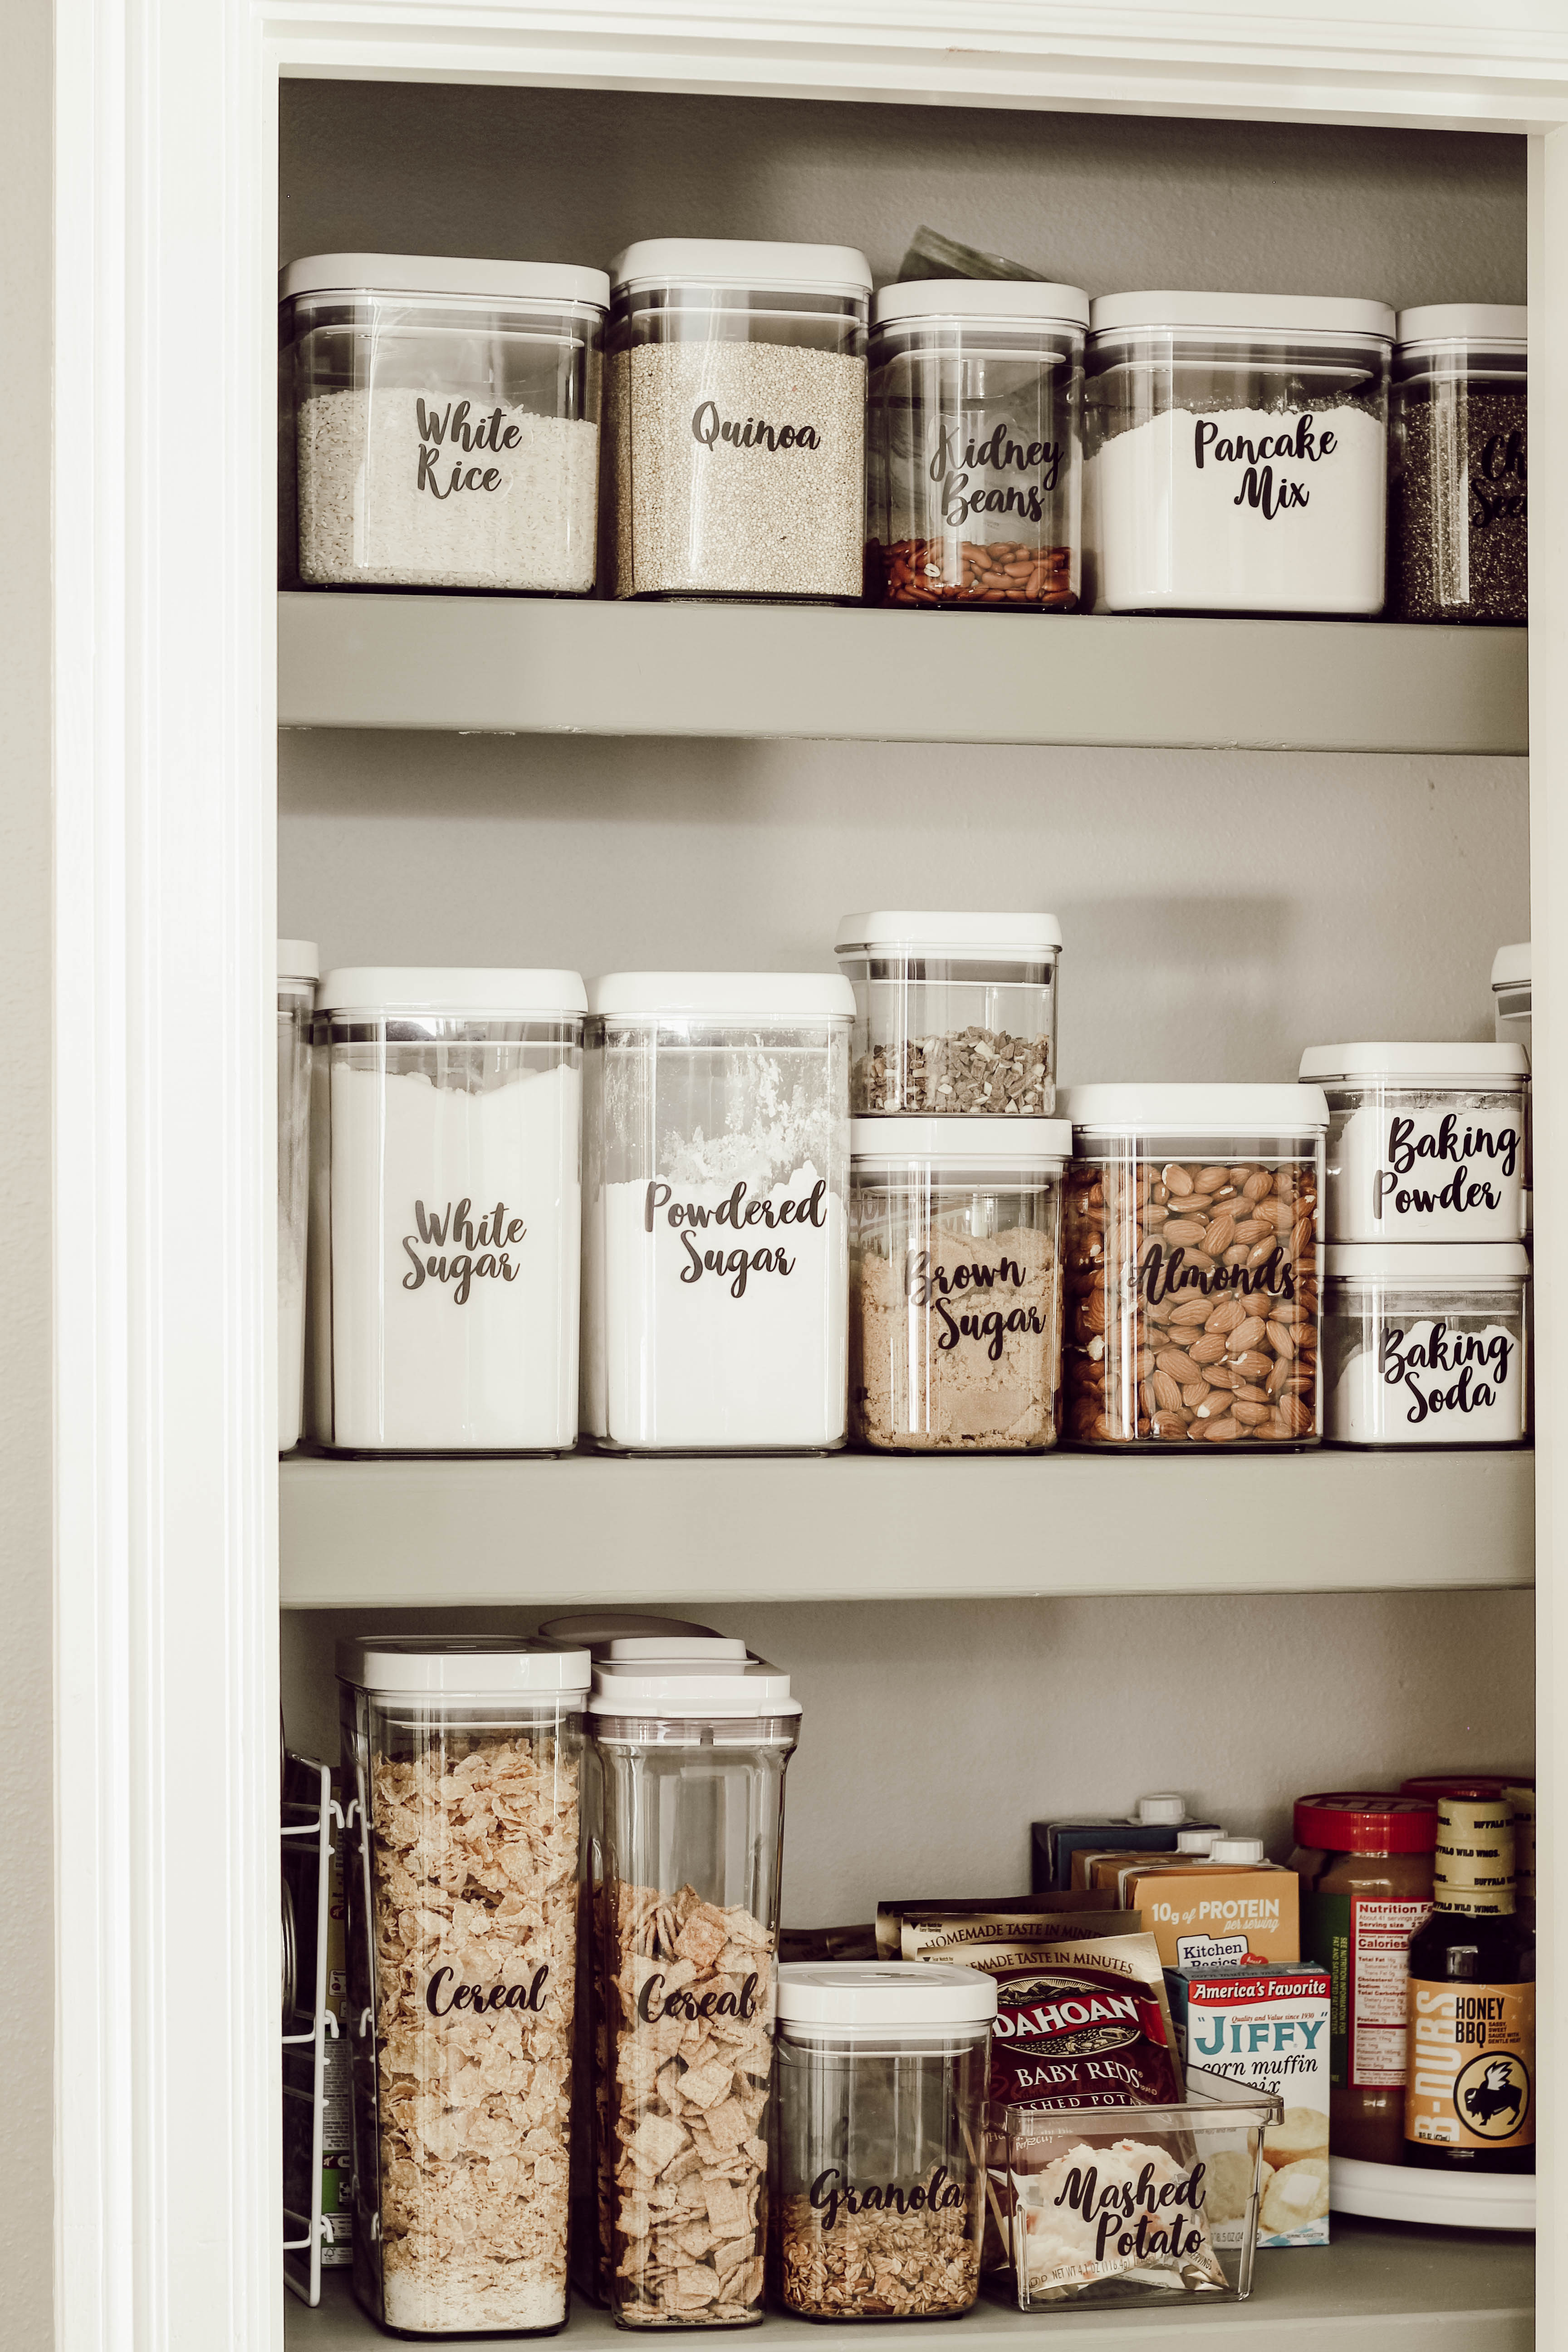 labeled canisters in a kitchen pantry